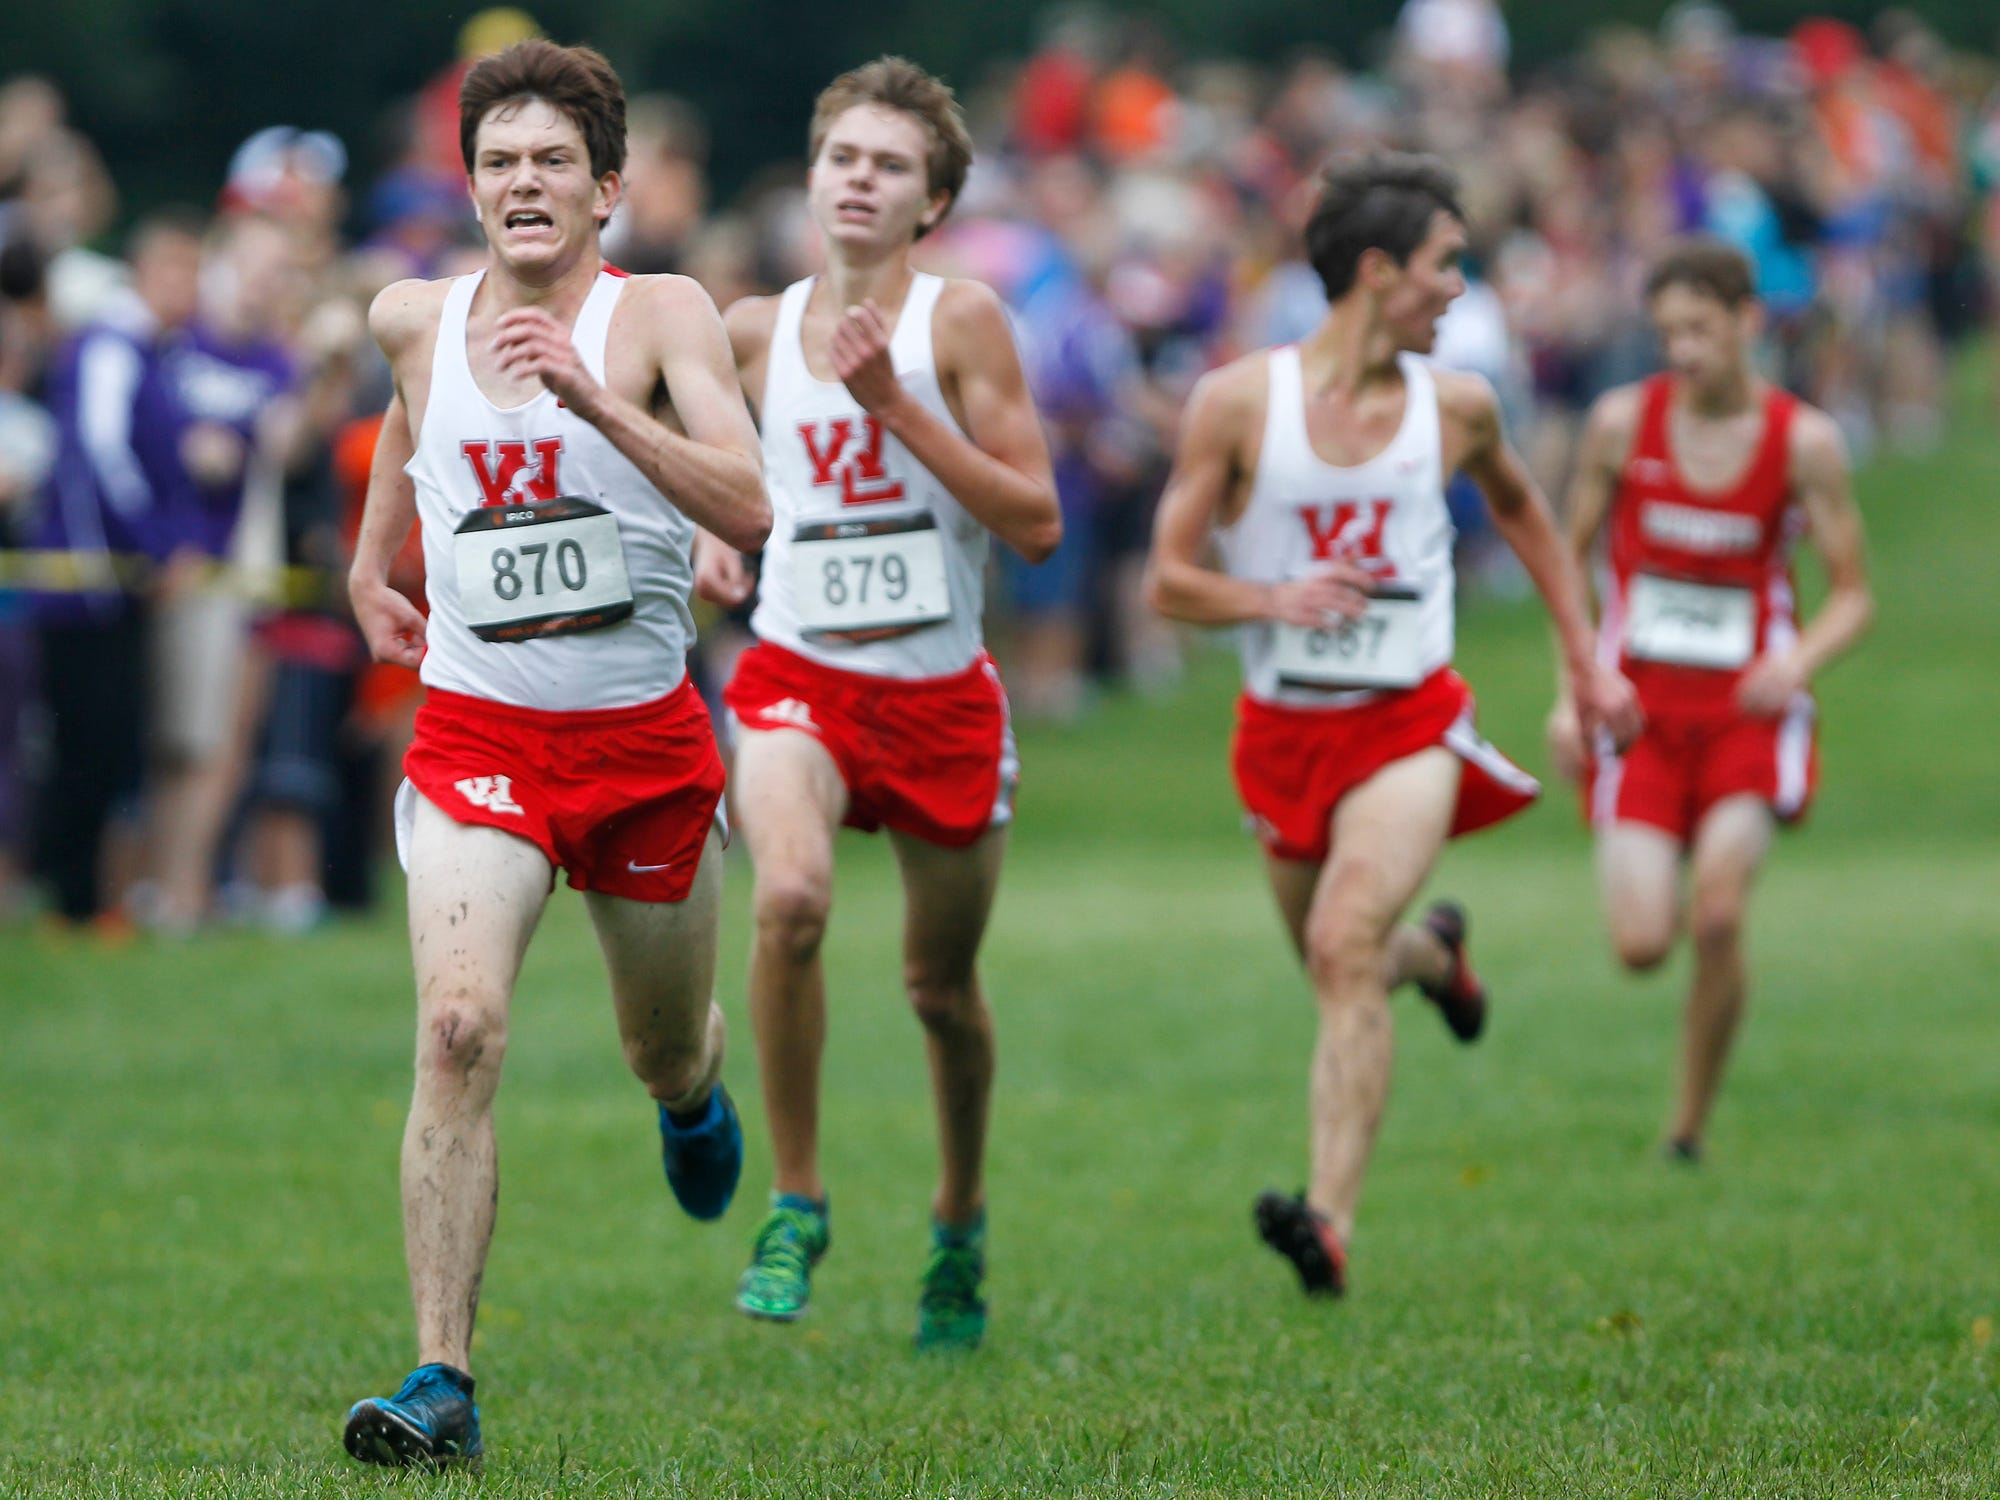 Jake Cohen, foreground, will continue his running career at Michigan State University.